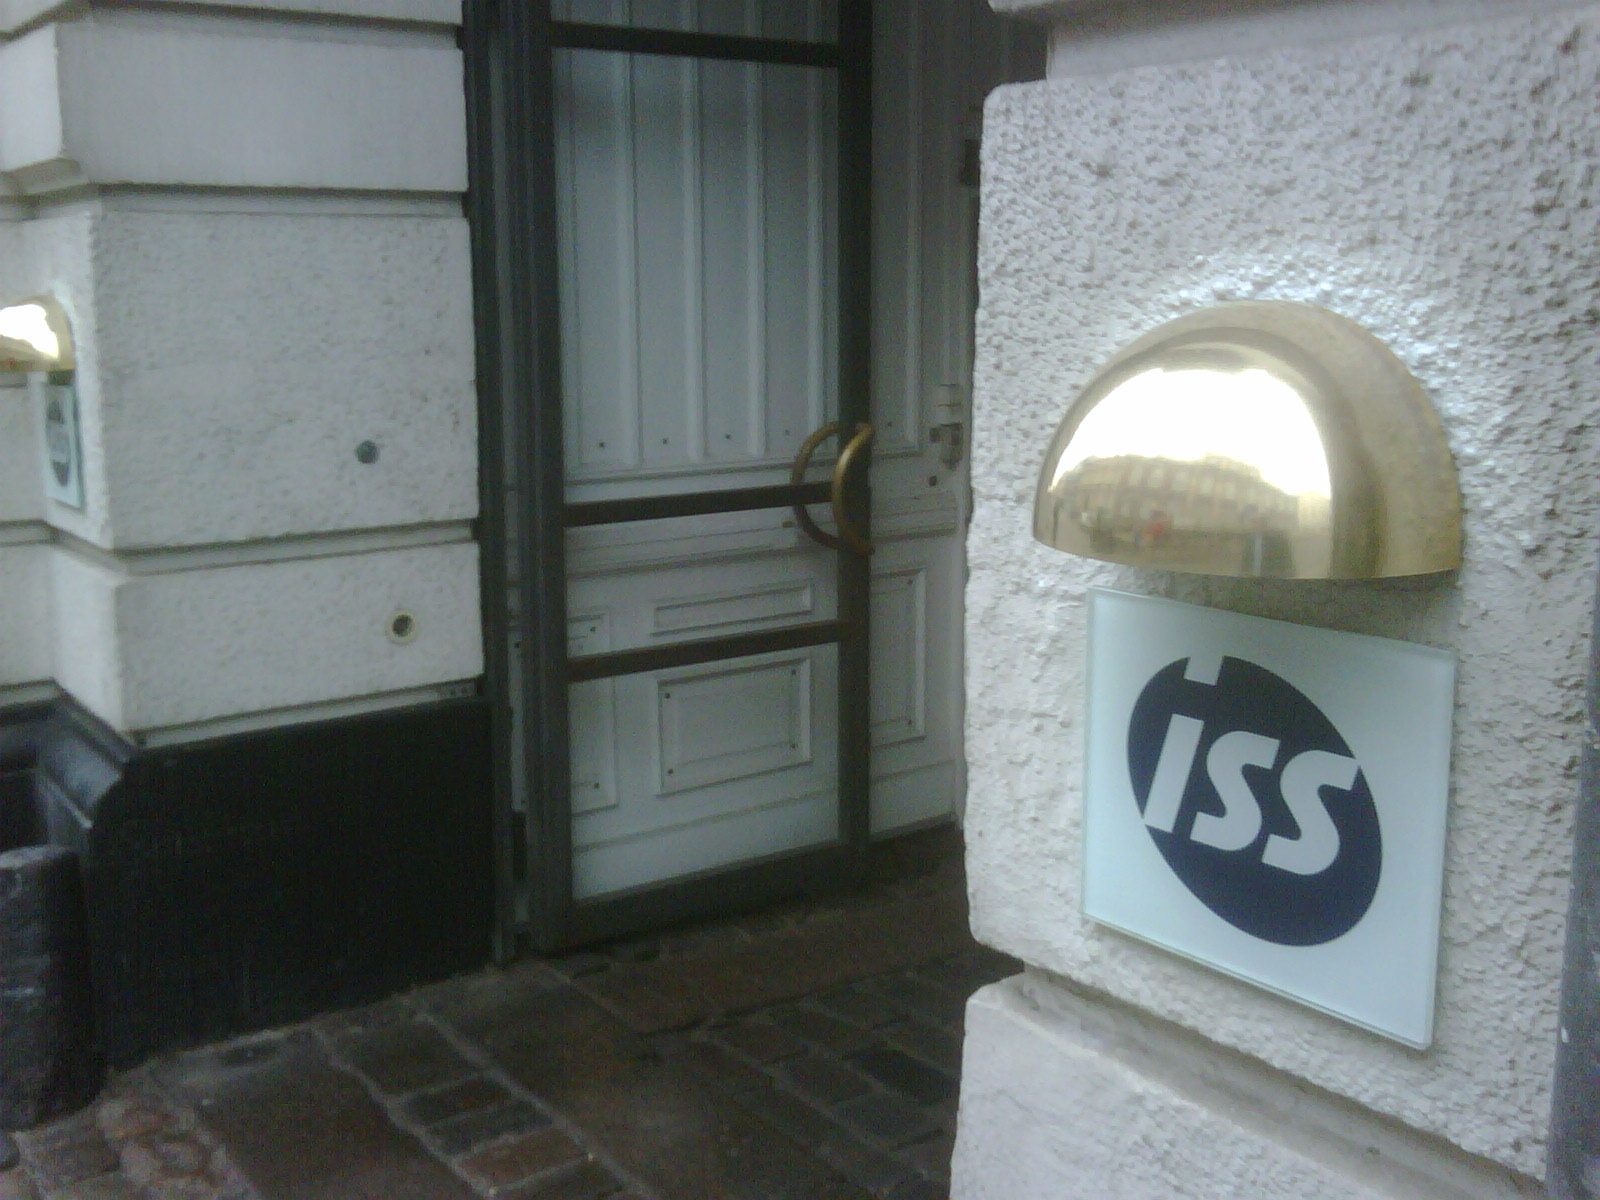 ISS HQ, don't blink or you'll miss it